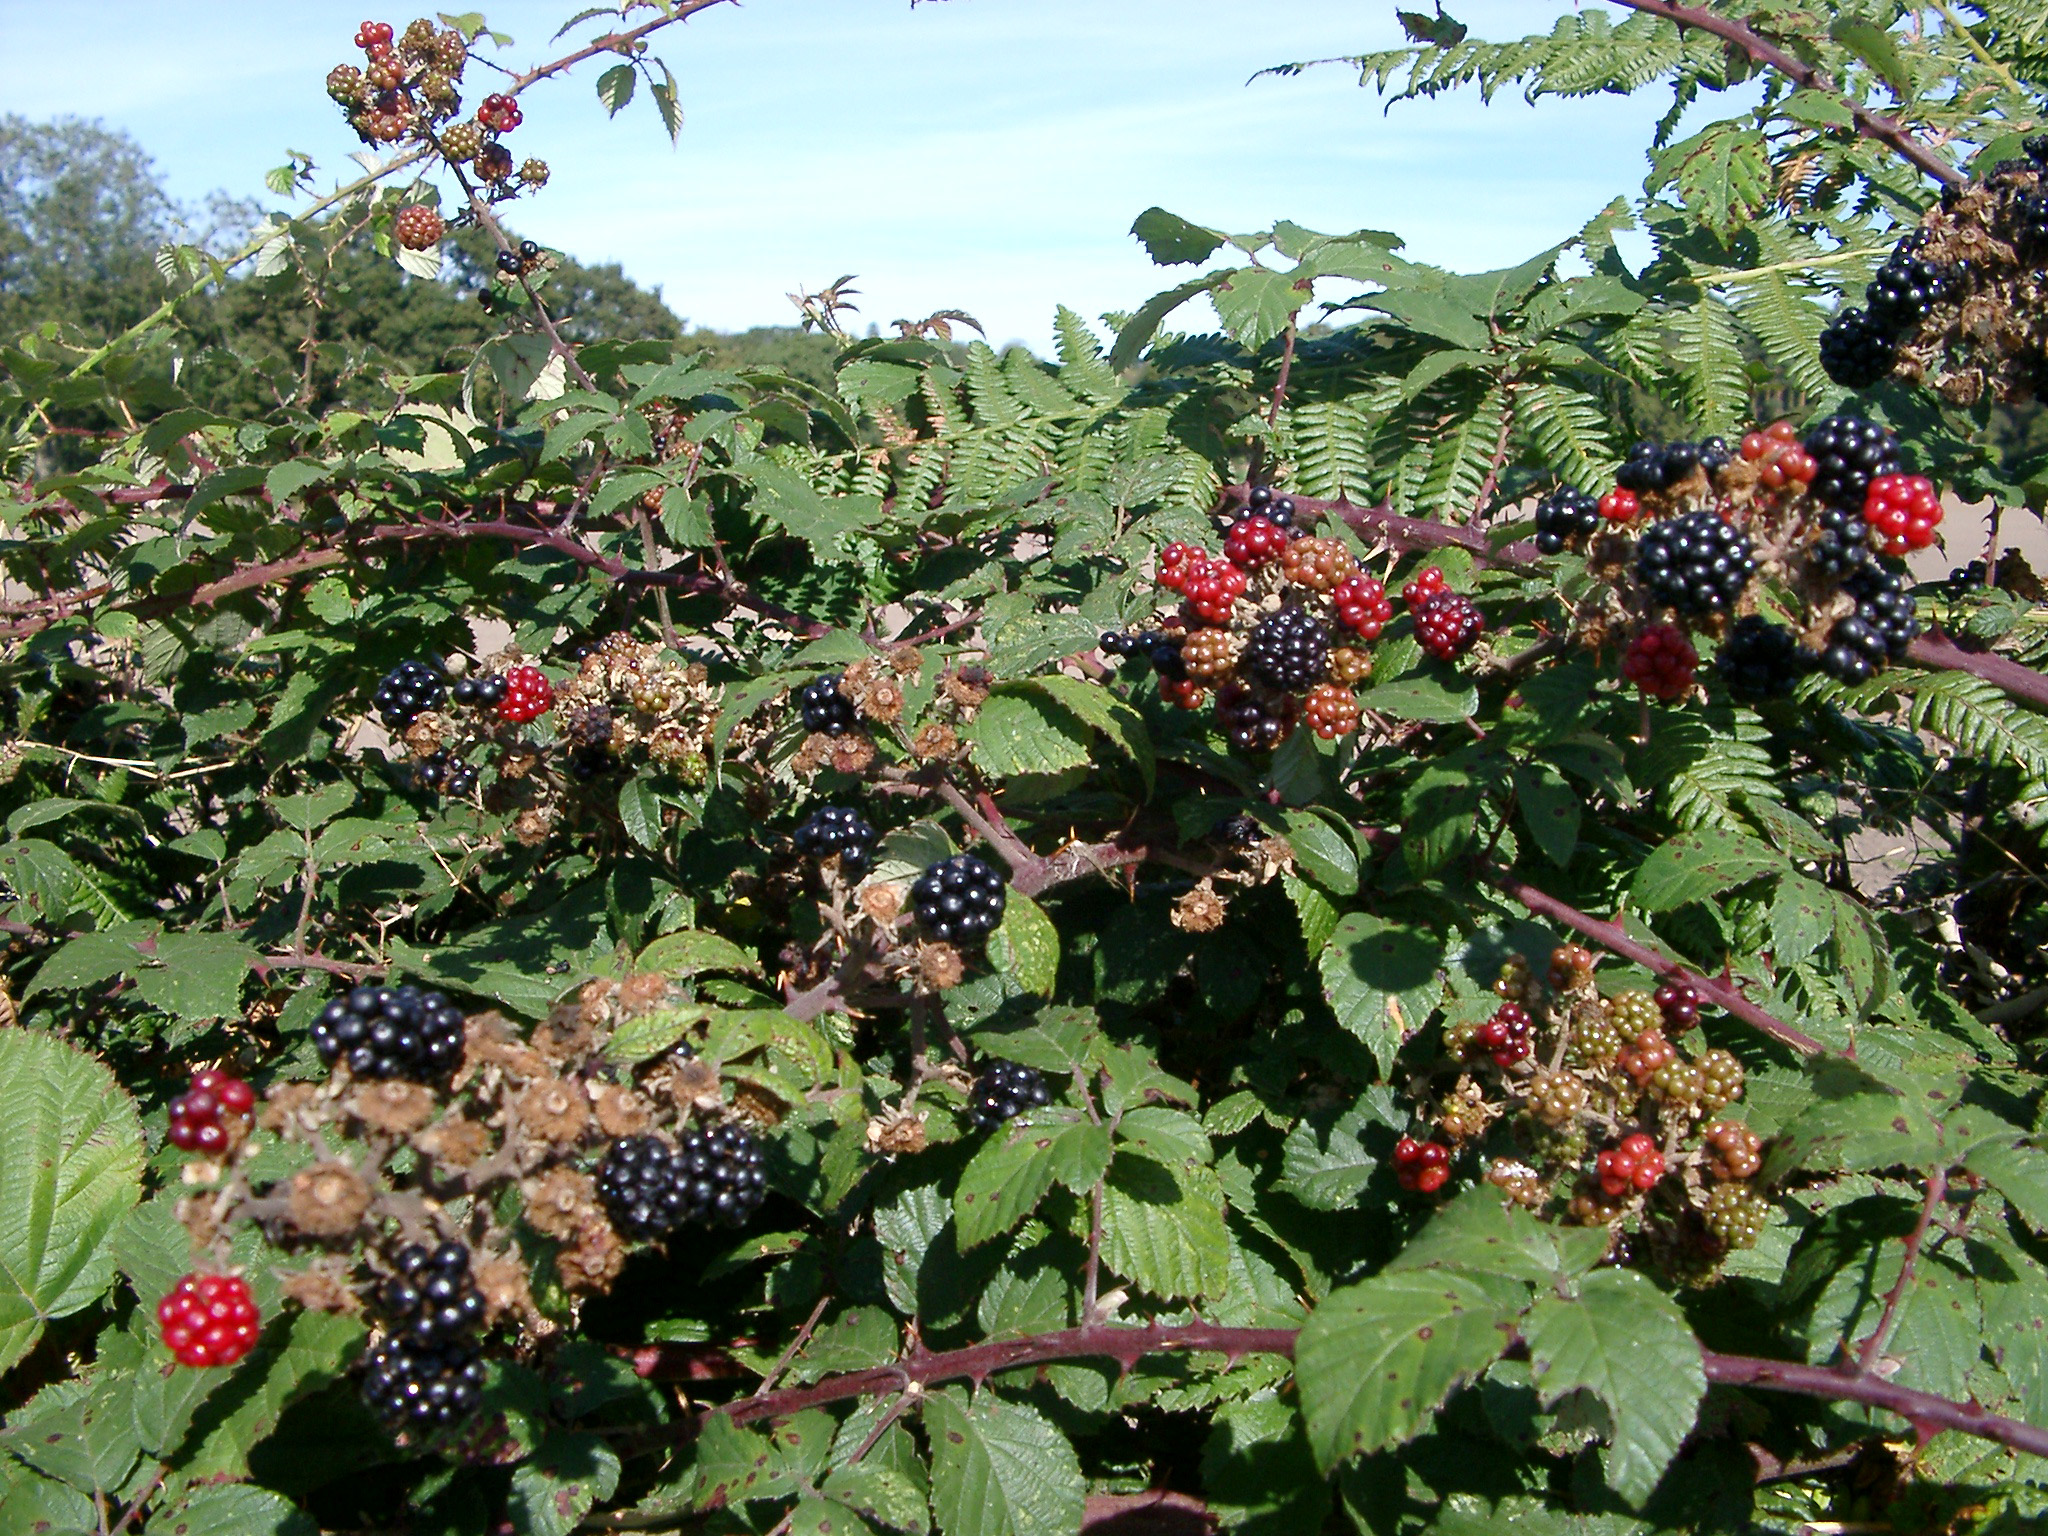 Close up of a hedgerow in farmland with ferns and blackberry canes covered in ripe blackberries and ripening red berries, close up detail of the fruit